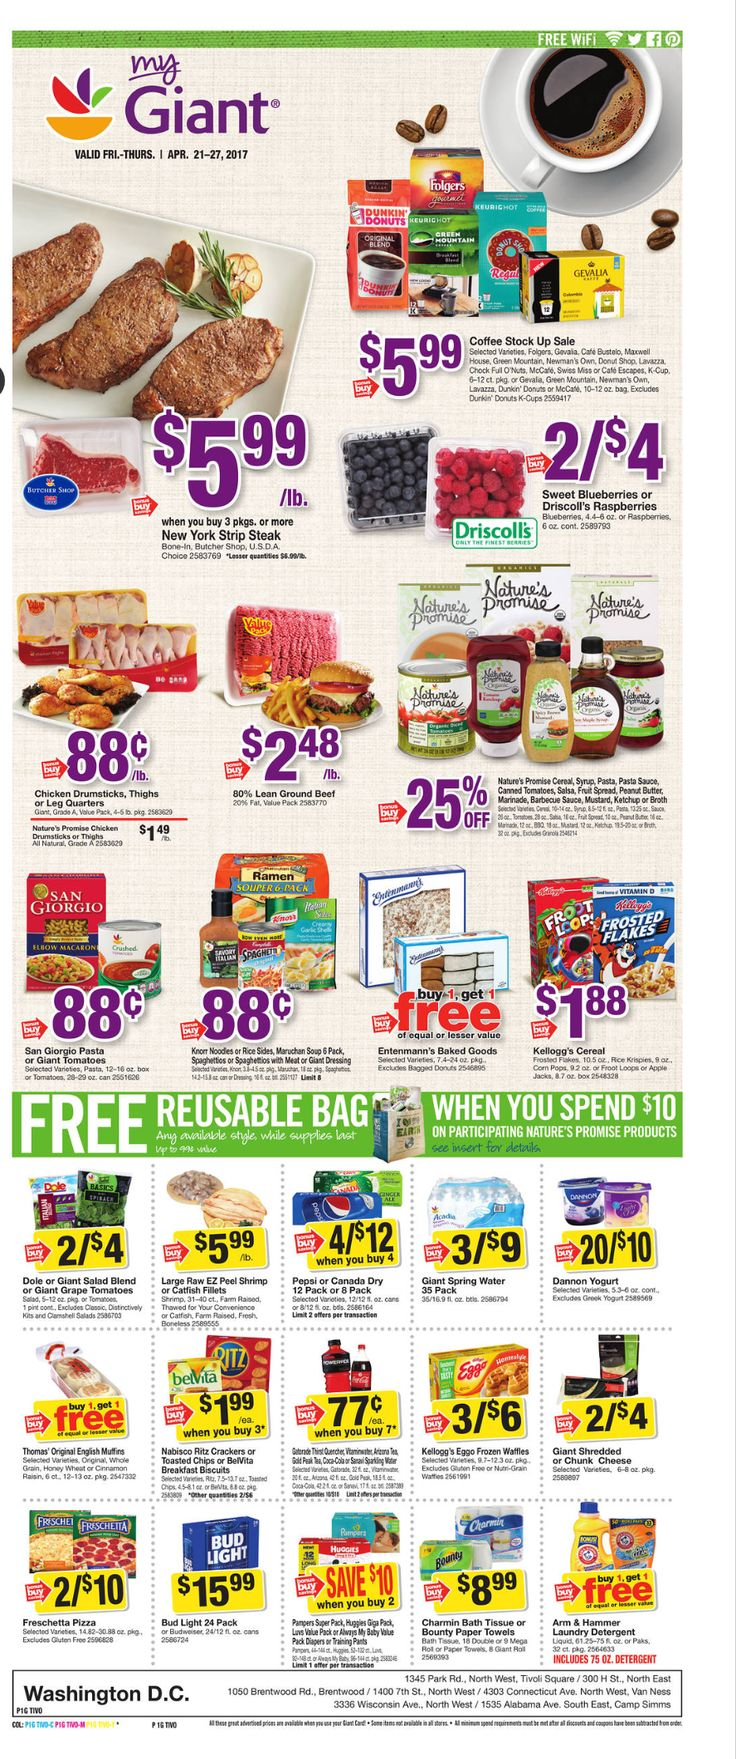 Giant Food Weekly Ad April 21 - 27, 2017 - http://www.olcatalog.com/grocery/giant-food-weekly-ad.html